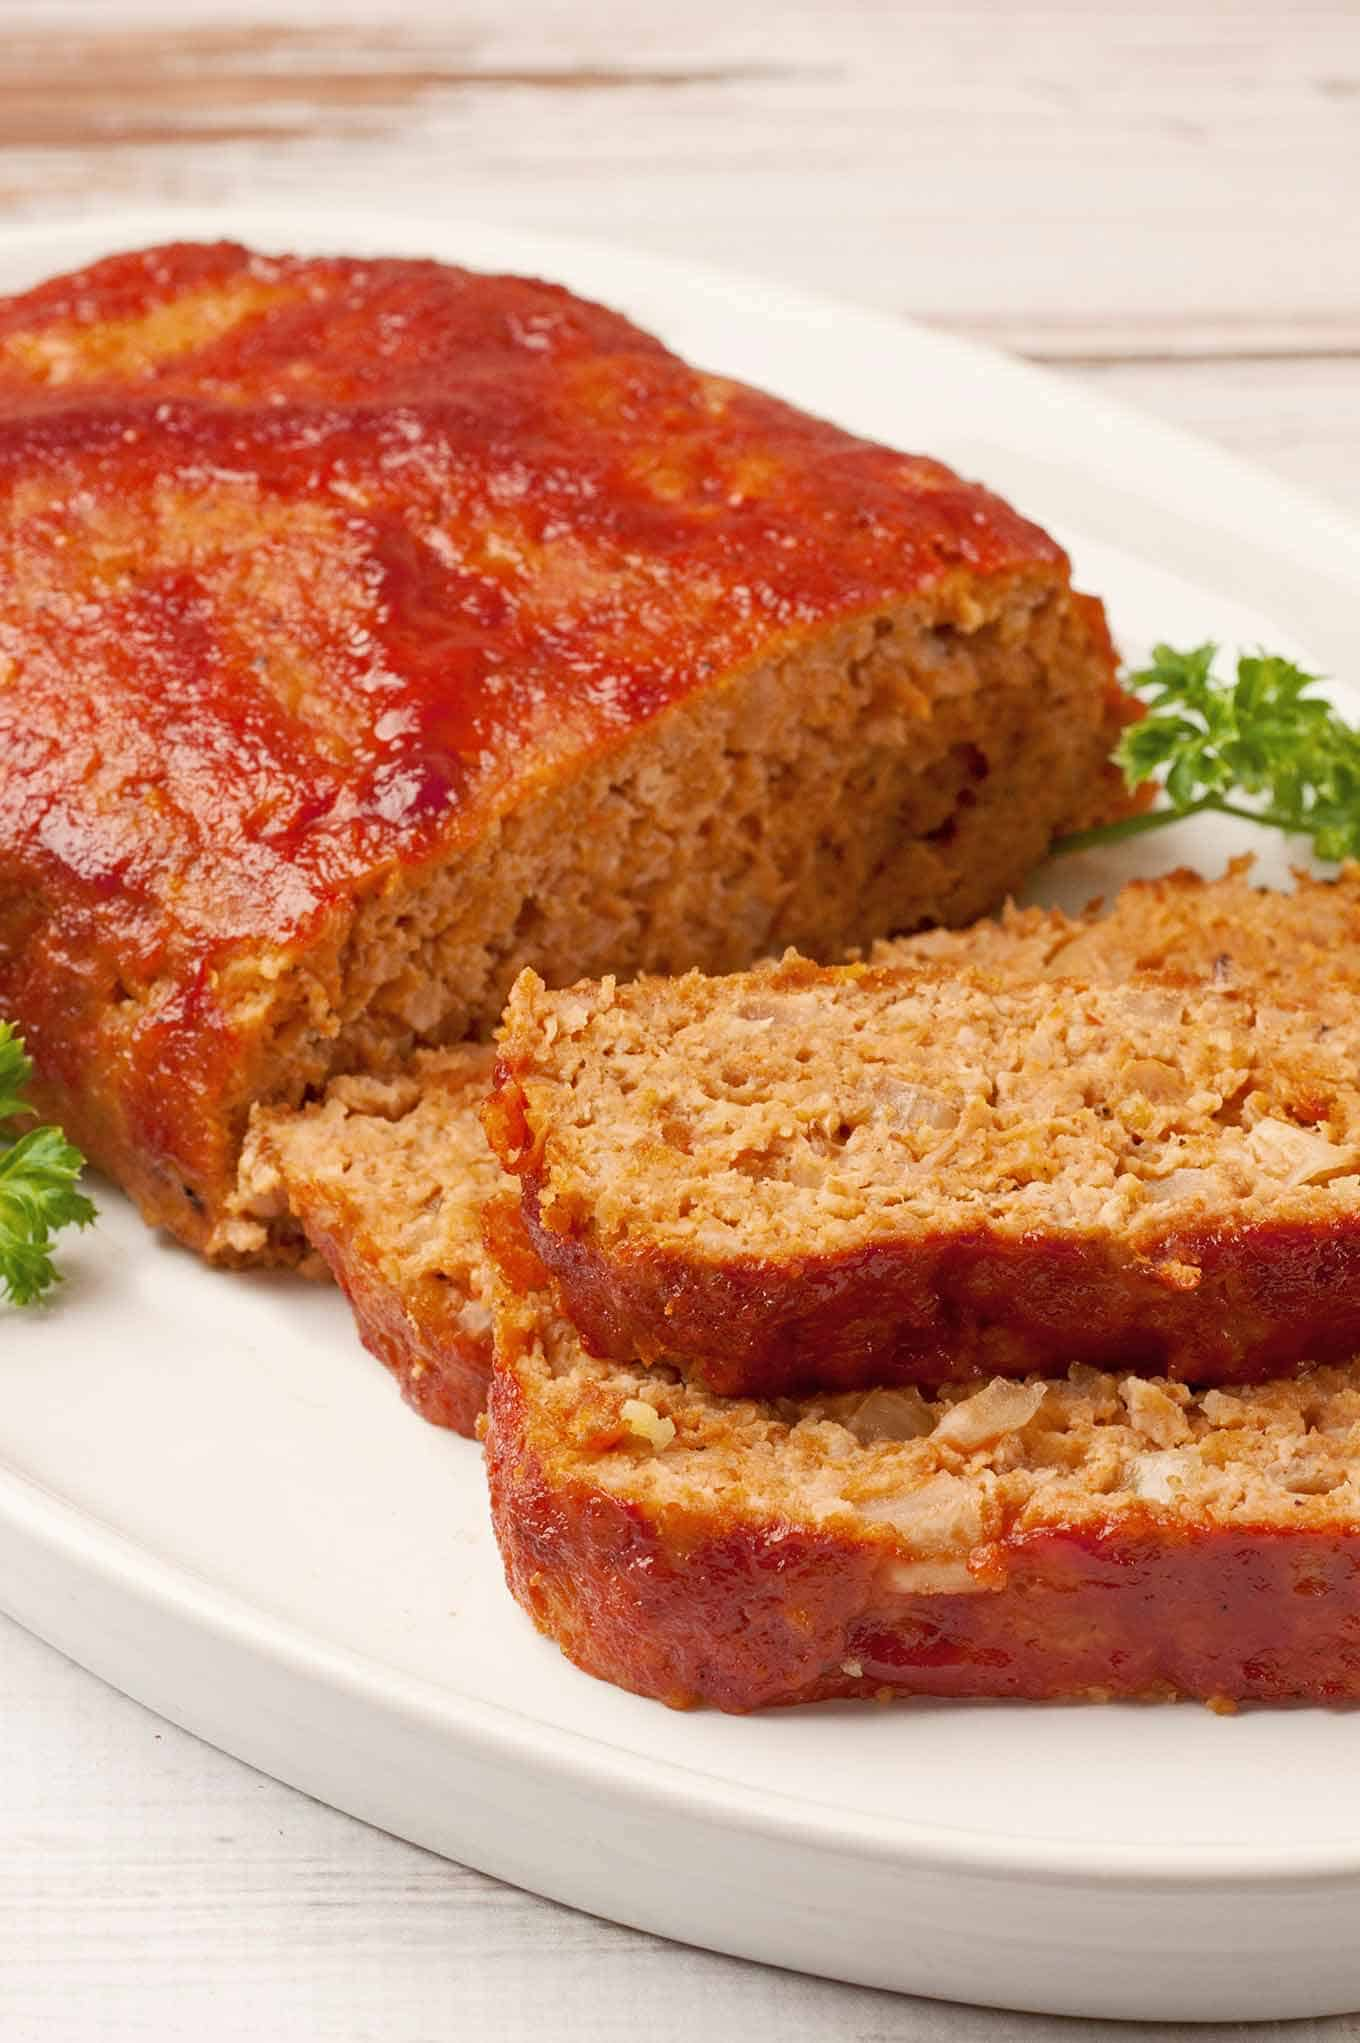 Barbecue chicken meatloaf on a serving plate with three slices cut from the end and parsley as garnish.